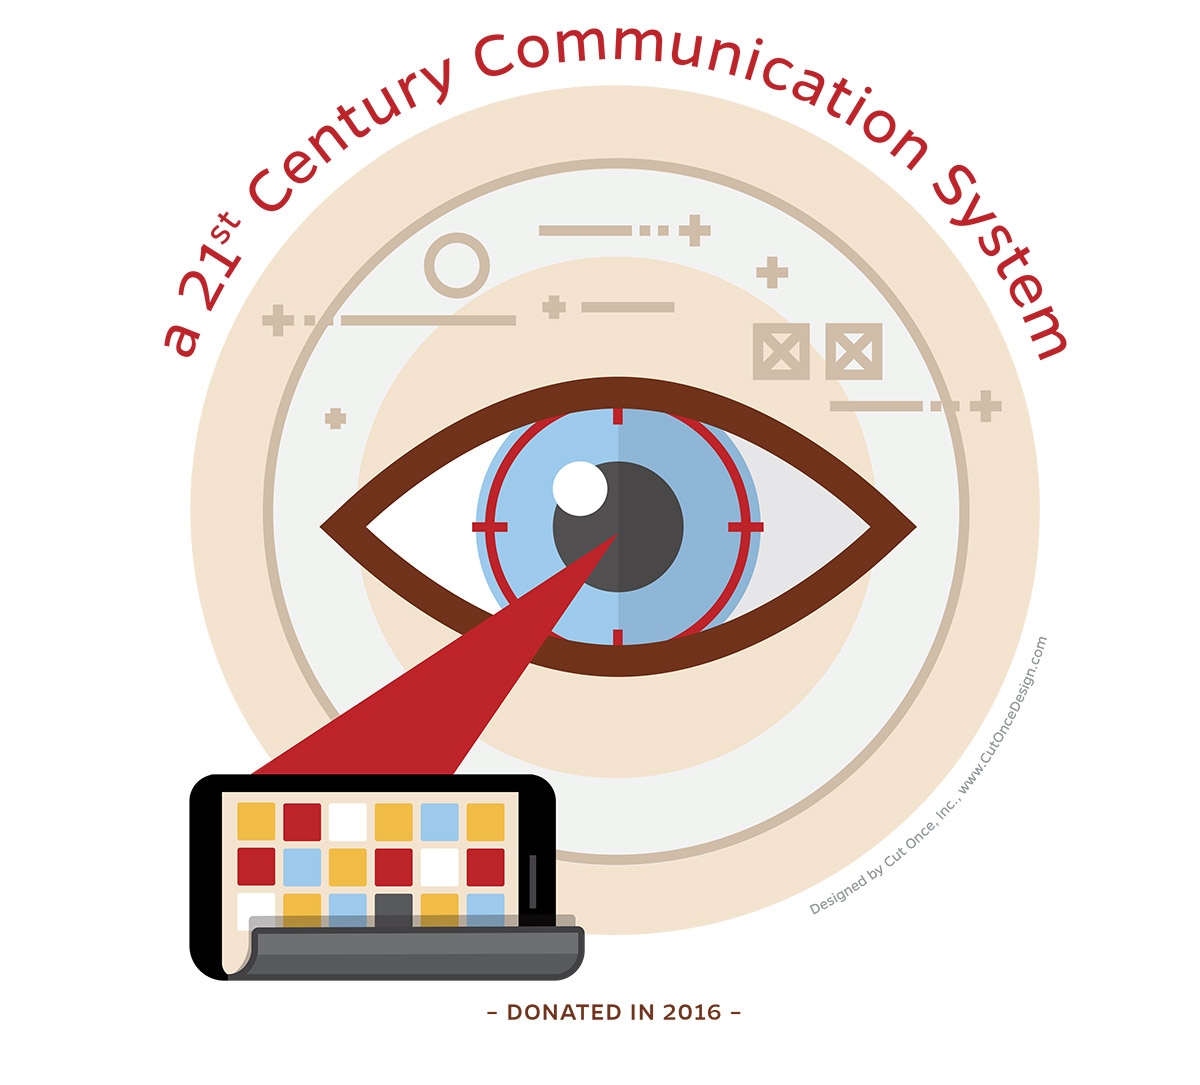 a 21st centry communication system